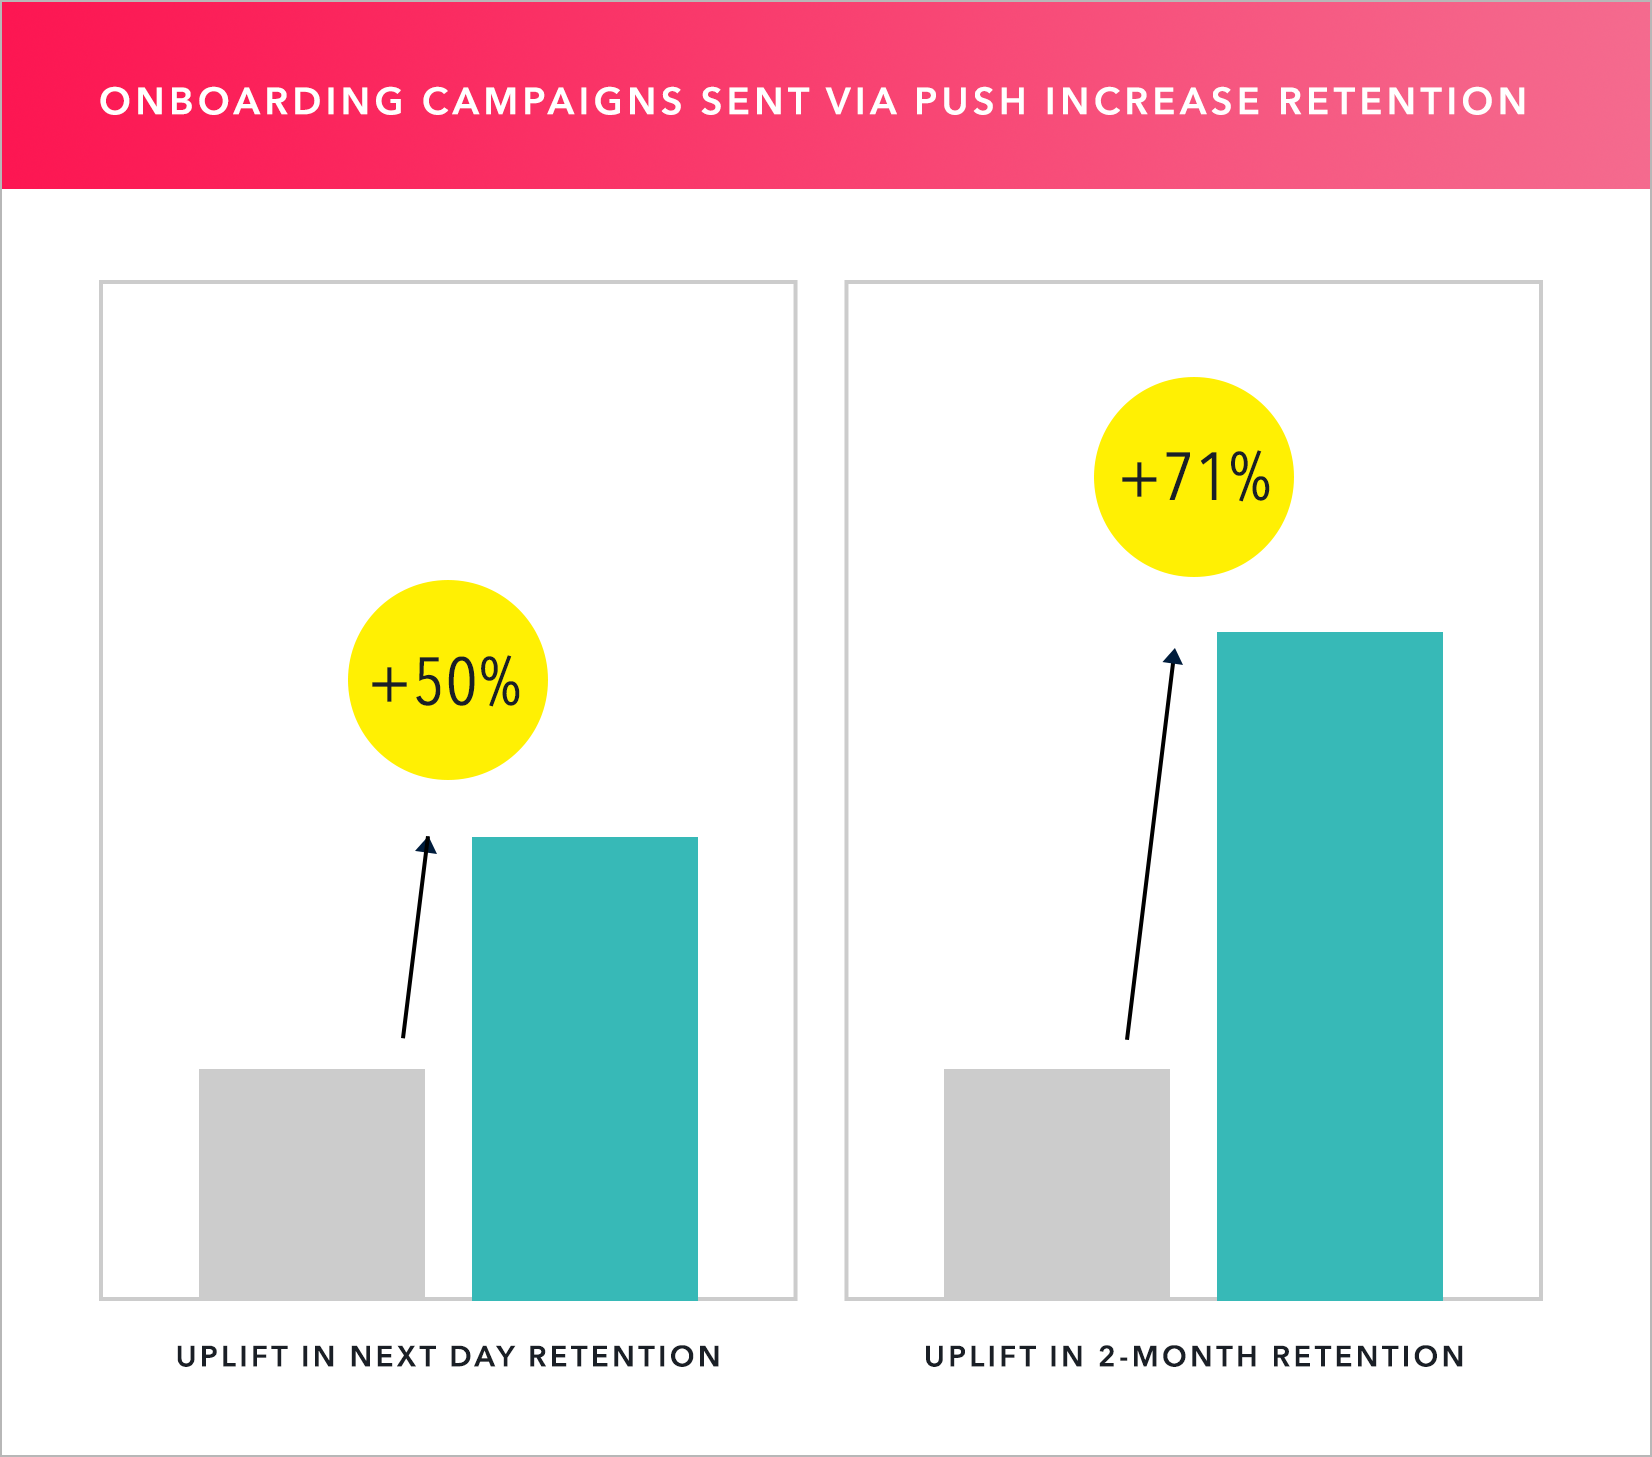 Push onboarding campaigns